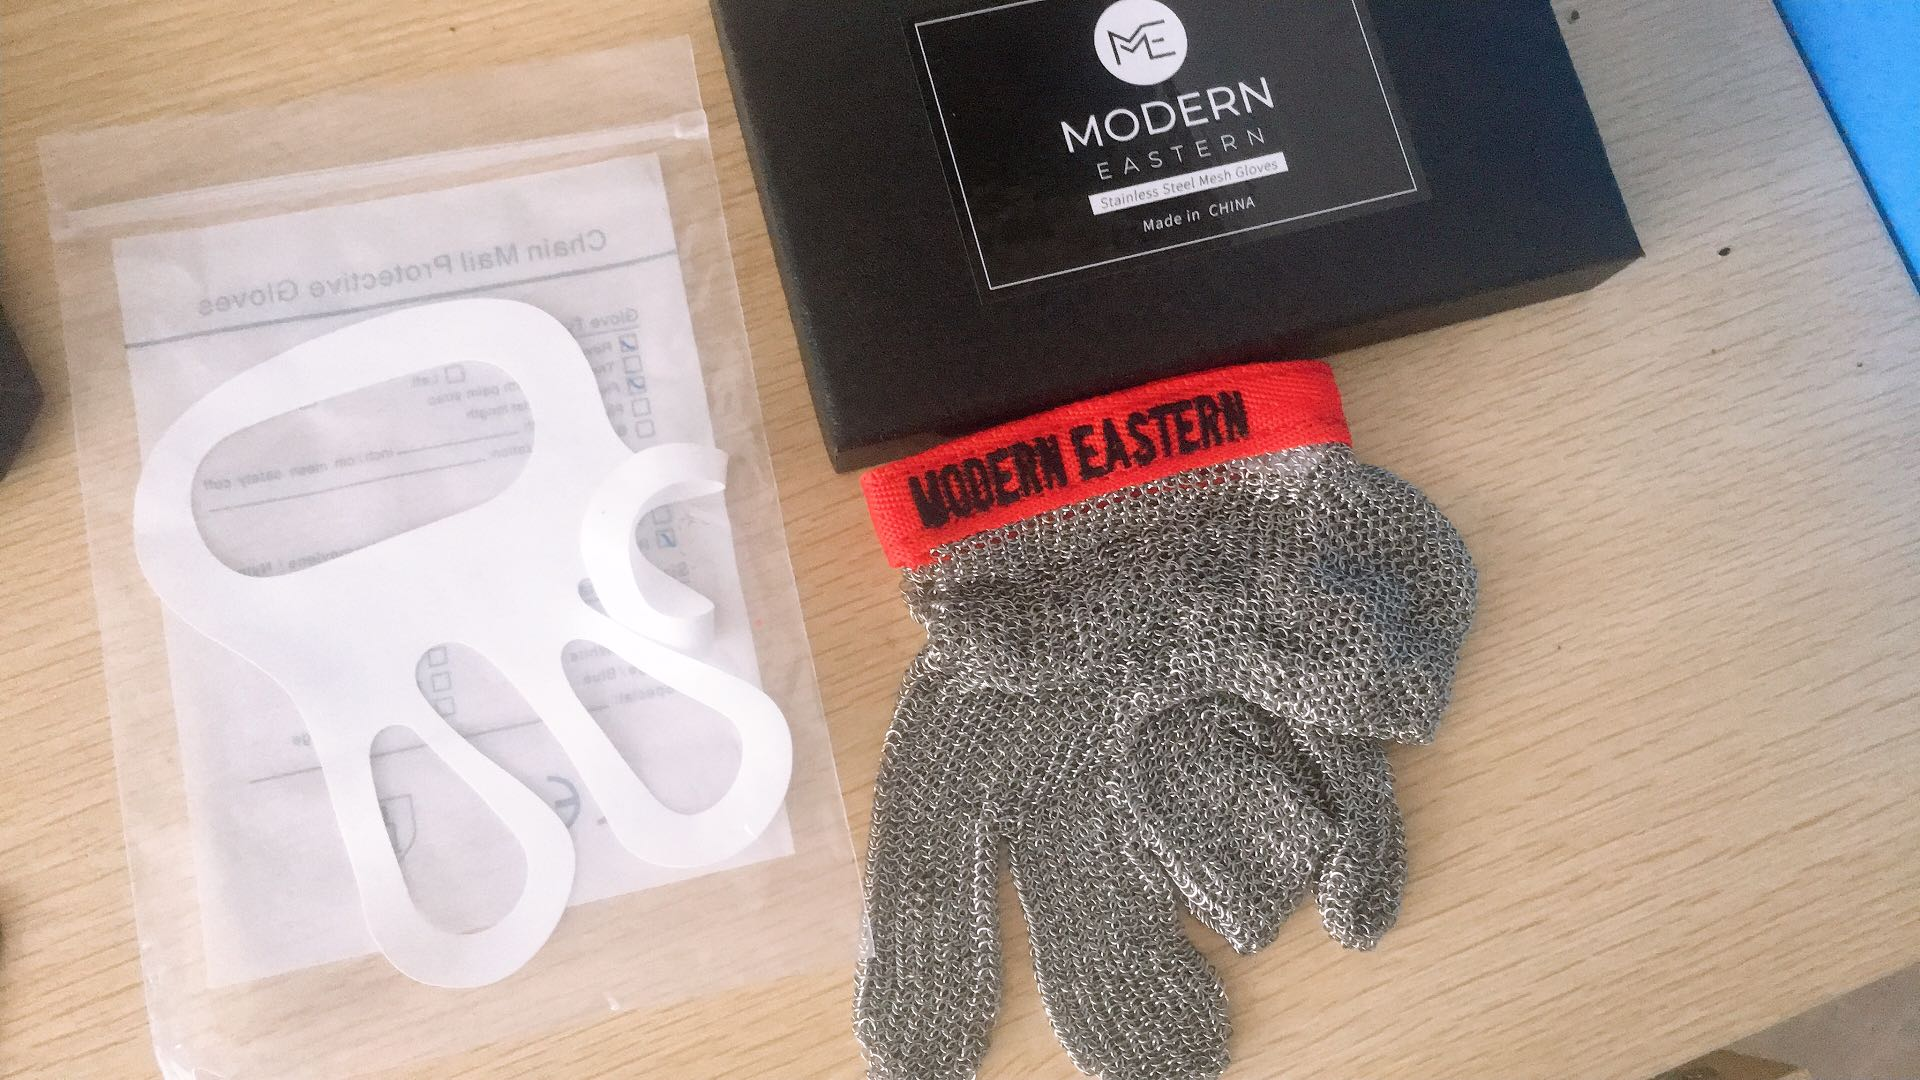 Mesh Gloves Modern Eastern